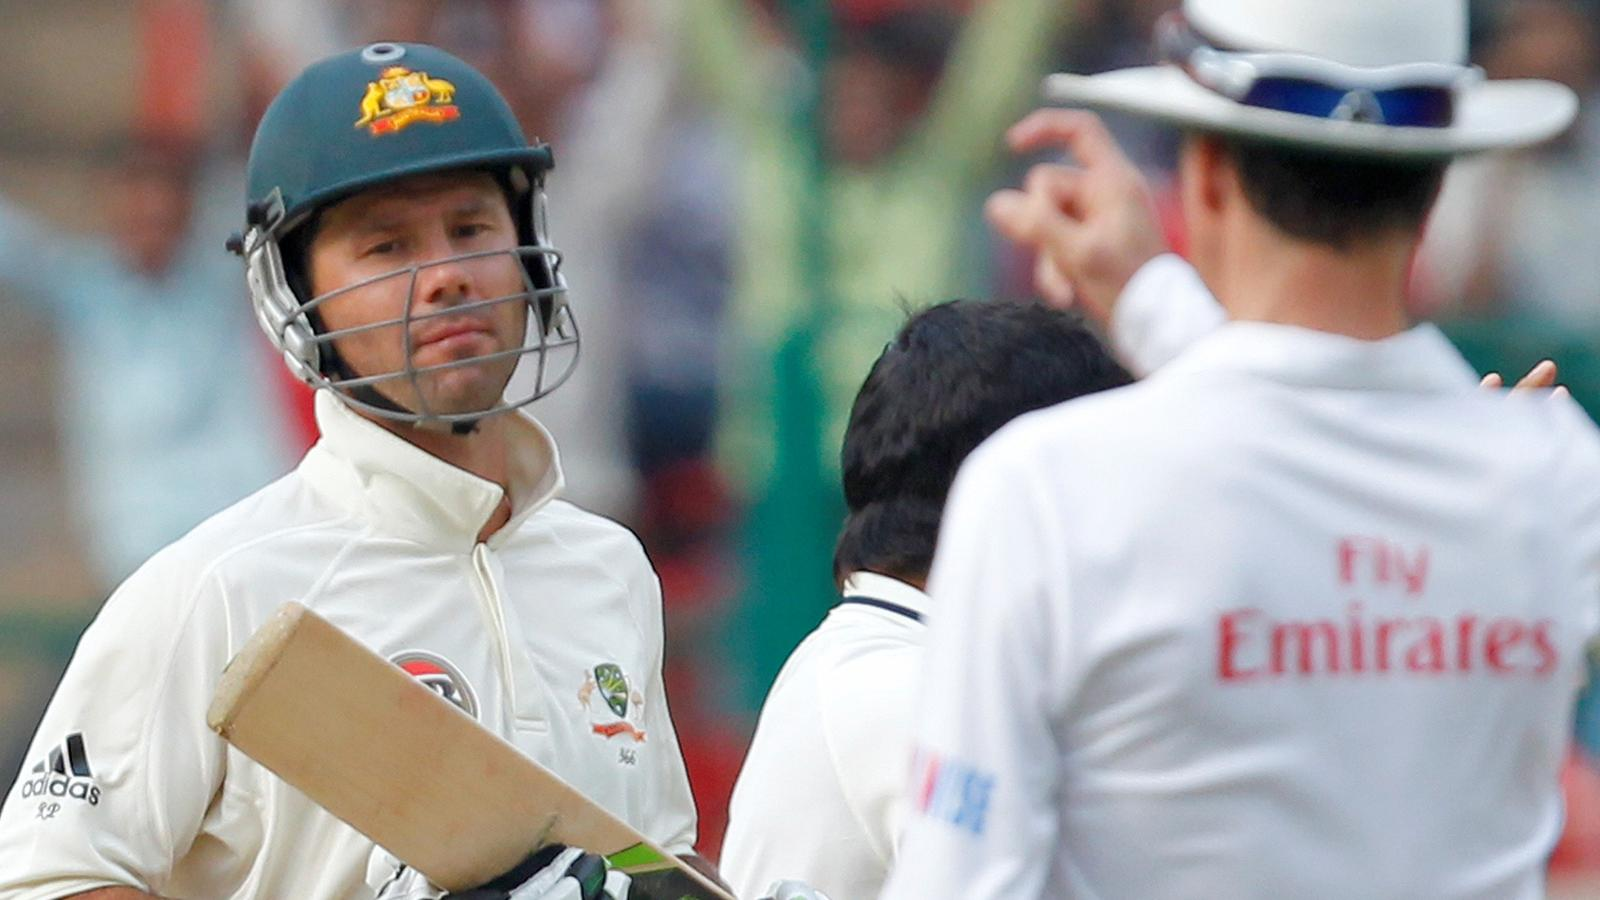 Ricky Ponting with wife Rianna and his daughters - Cricket Country Ricky ponting marriage photos